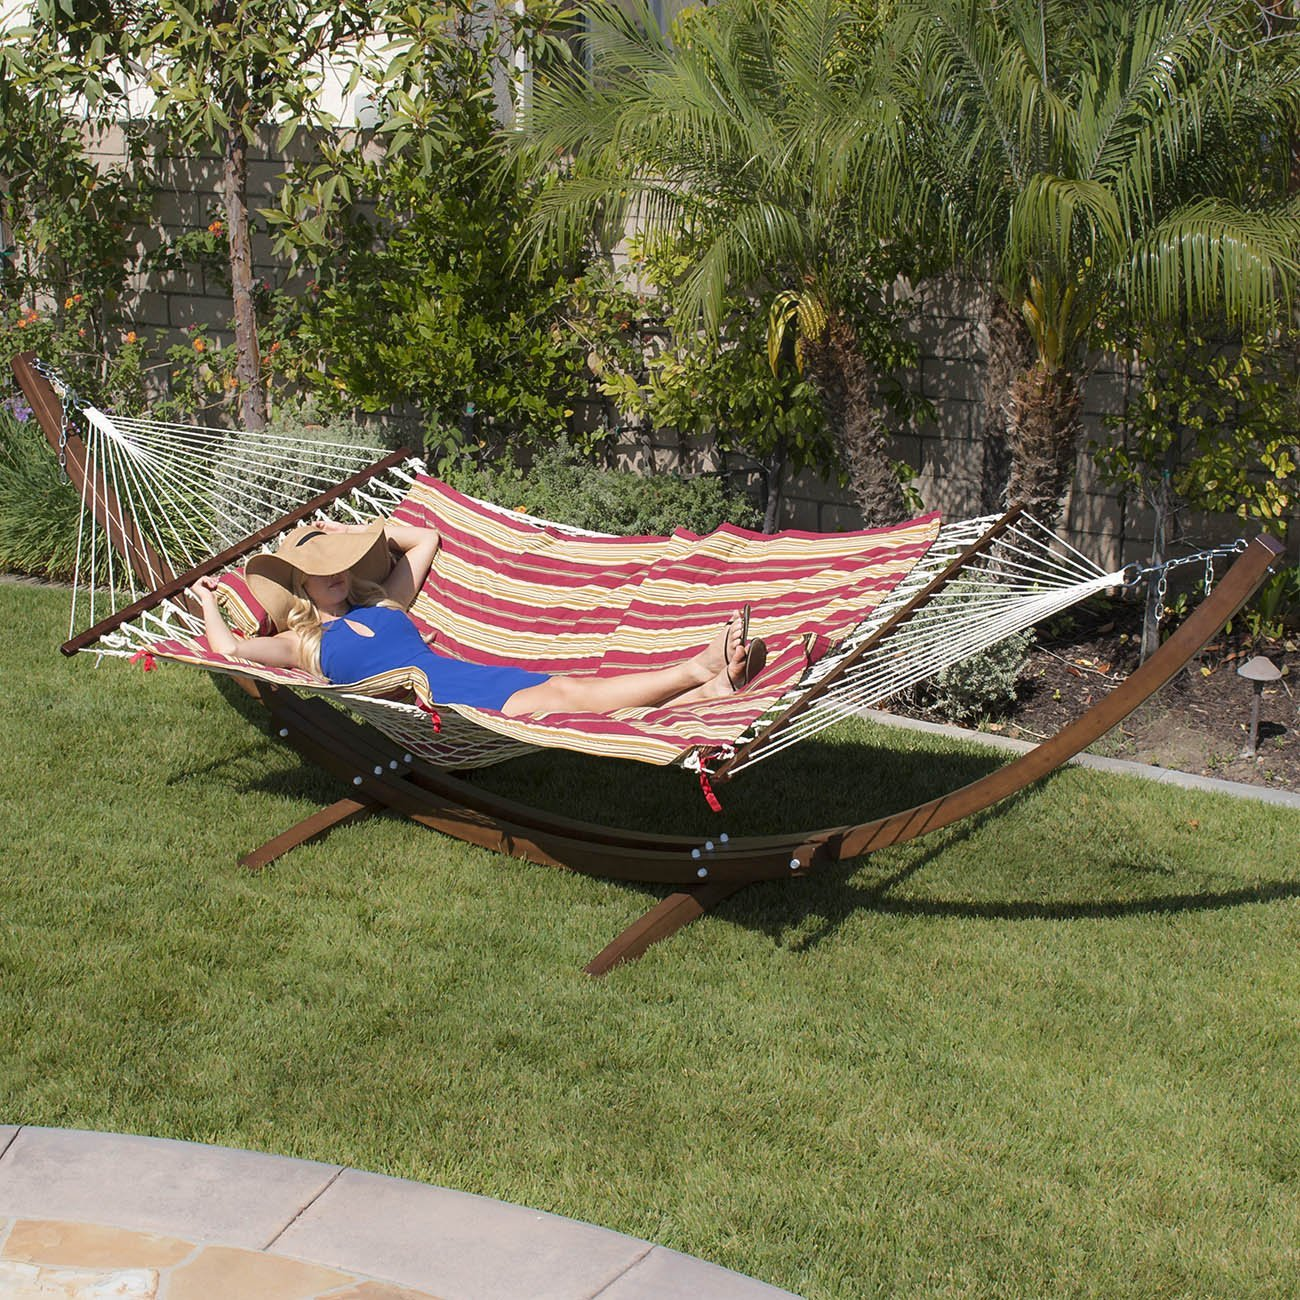 Belleze 13ft Wooden Curved Arc Hammock Stand, Back Yard Garden Caribbean Cotton w/Tablet and Cup Holder